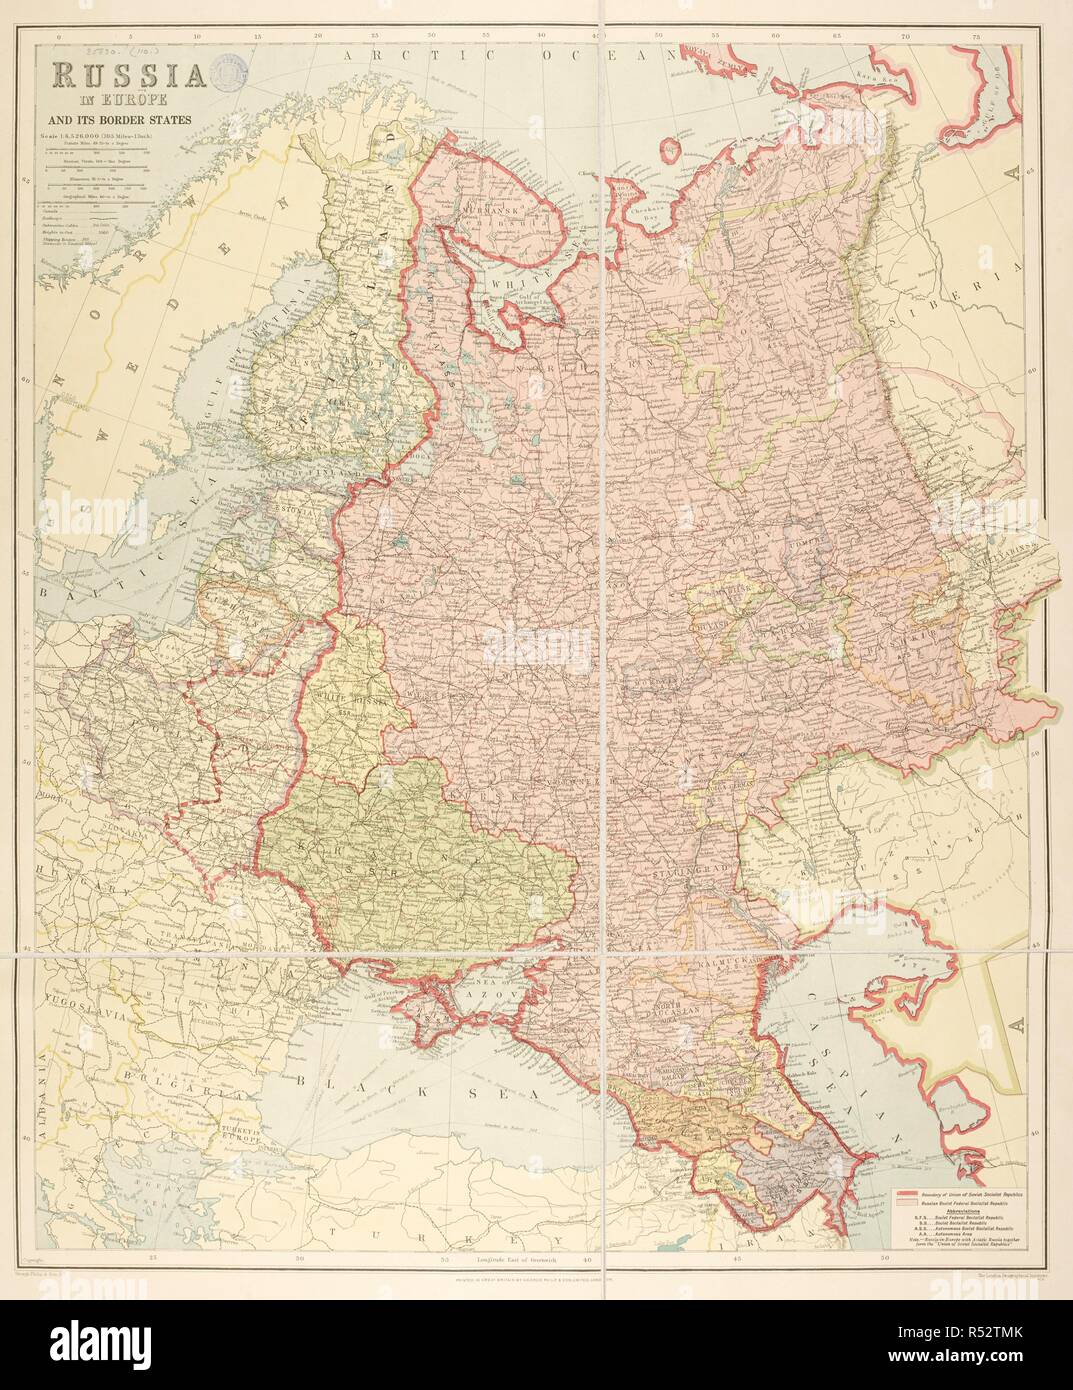 London Border Map.A Map Of Russia And Near Countries Dated 1940 The Map Shows The